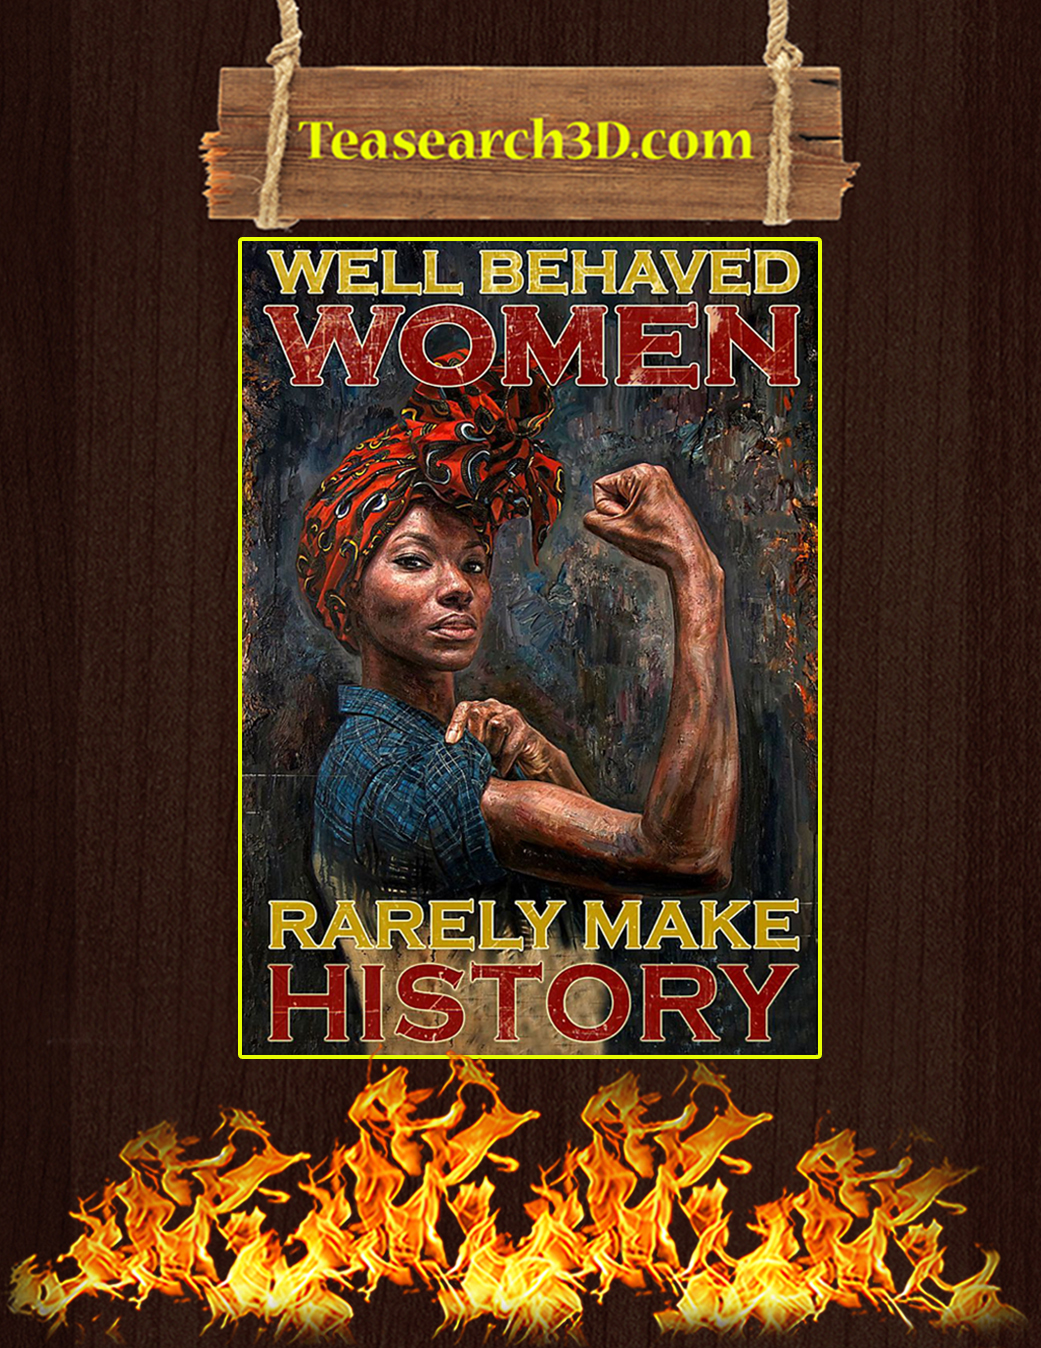 Well behaved black women rarely make history poster A1